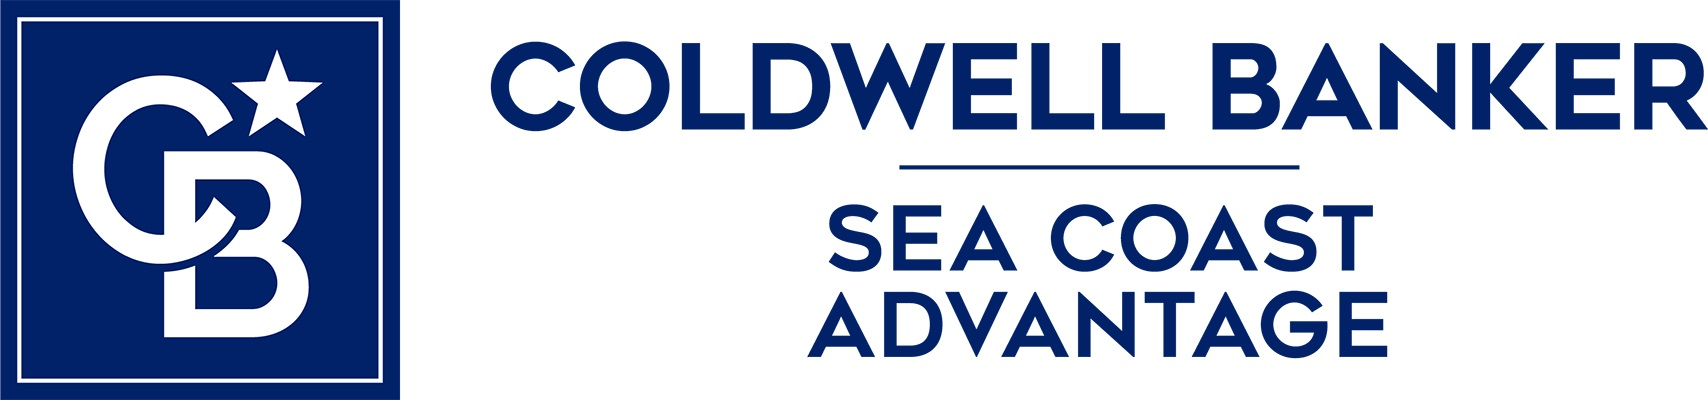 Bernadette Tucker - Coldwell Banker Sea Coast Advantage Realty